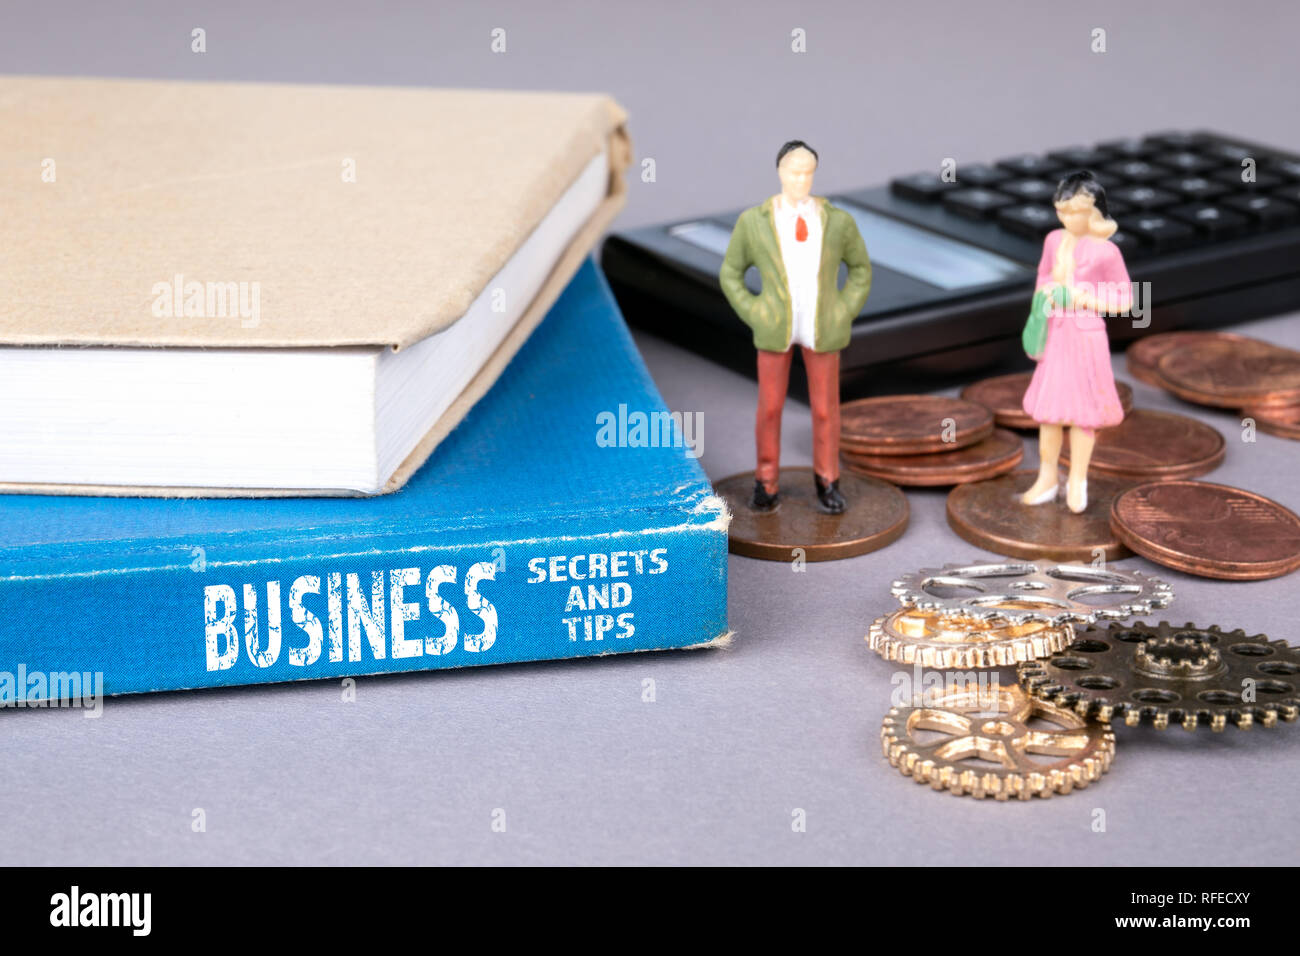 business secrets and tips concept - Stock Image